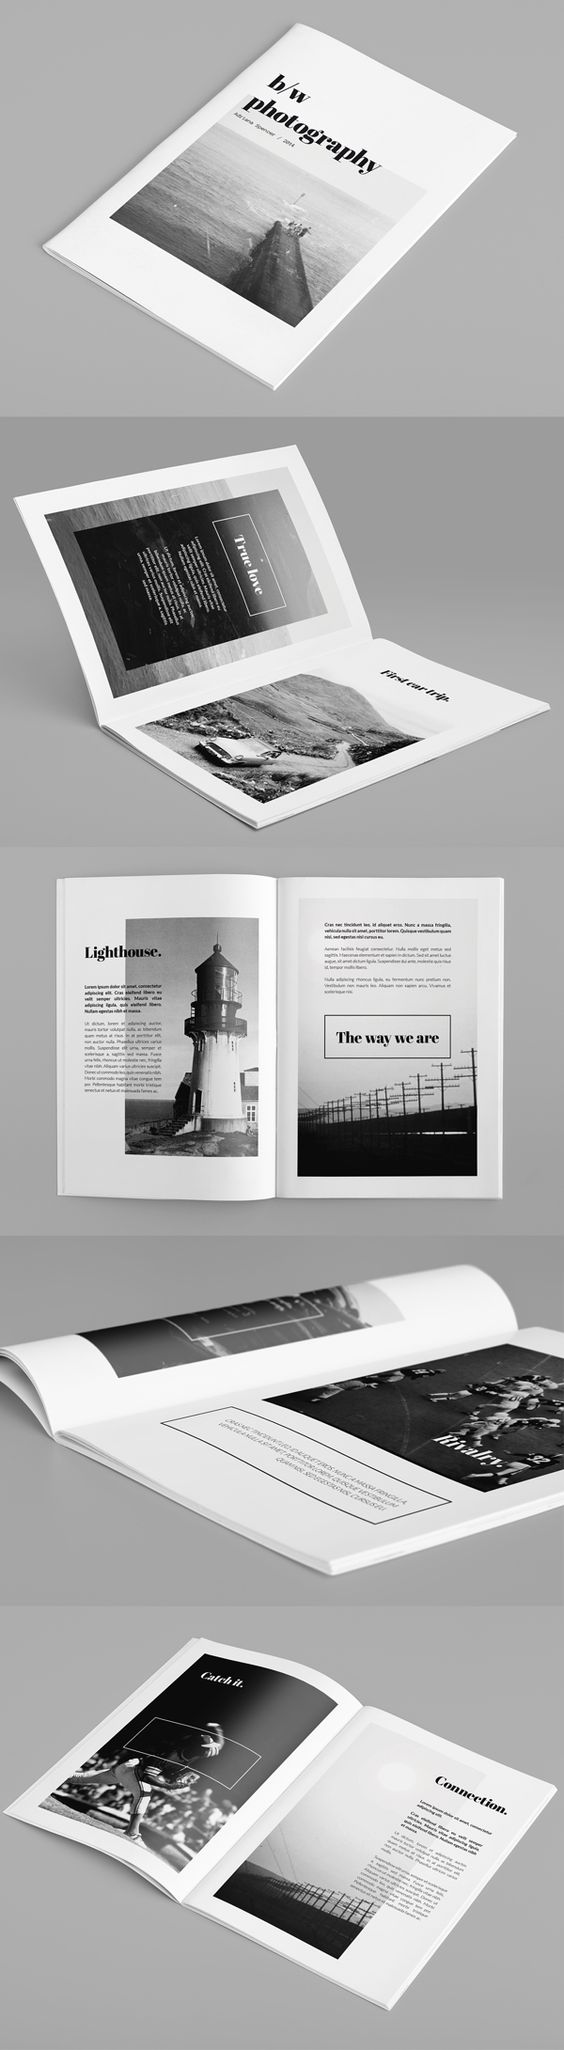 Minimal Photography Portfolio Brochure by Rounded Hexagon, via Behance